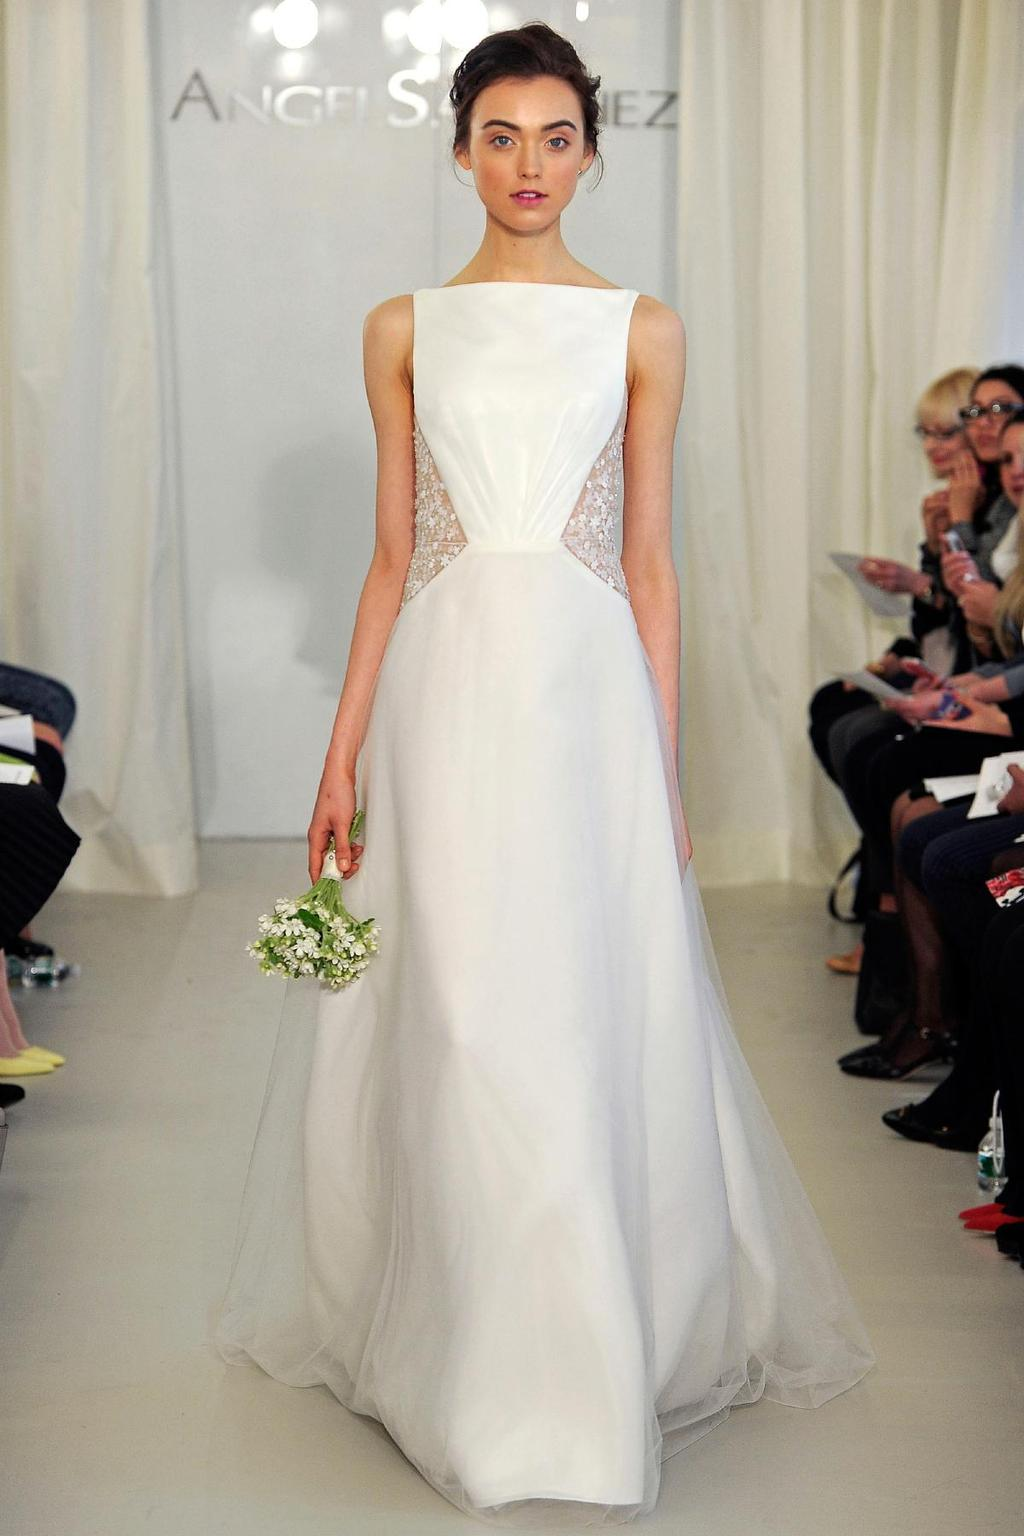 Angel-sanchez-wedding-dress-spring-2014-bridal-3.full